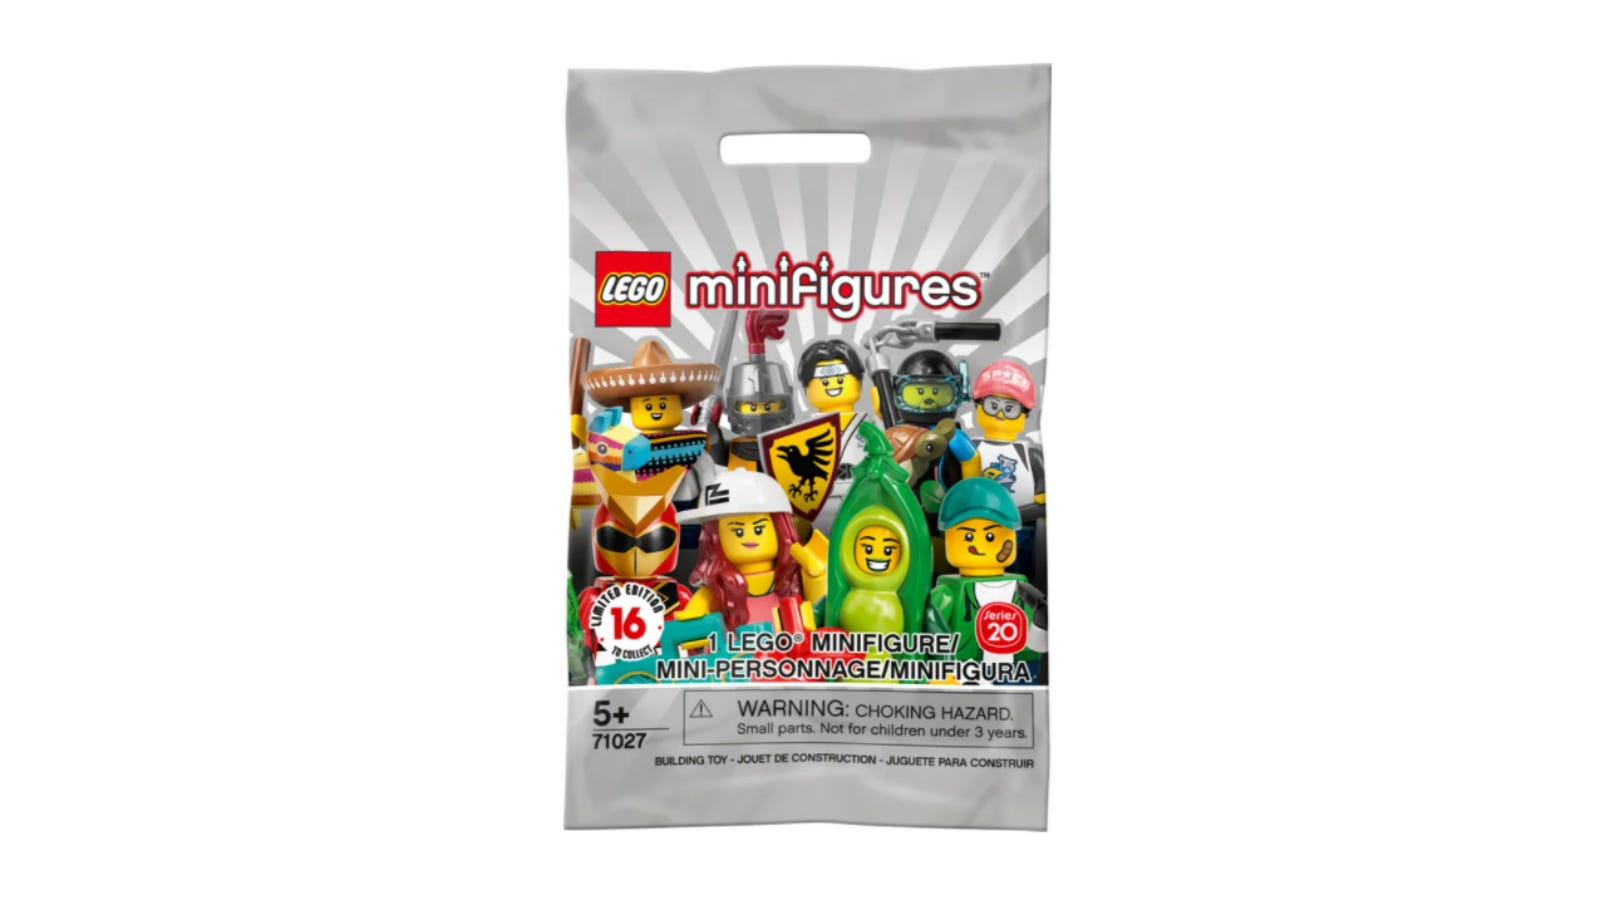 LEGO Random Minifigures Bag Series 20